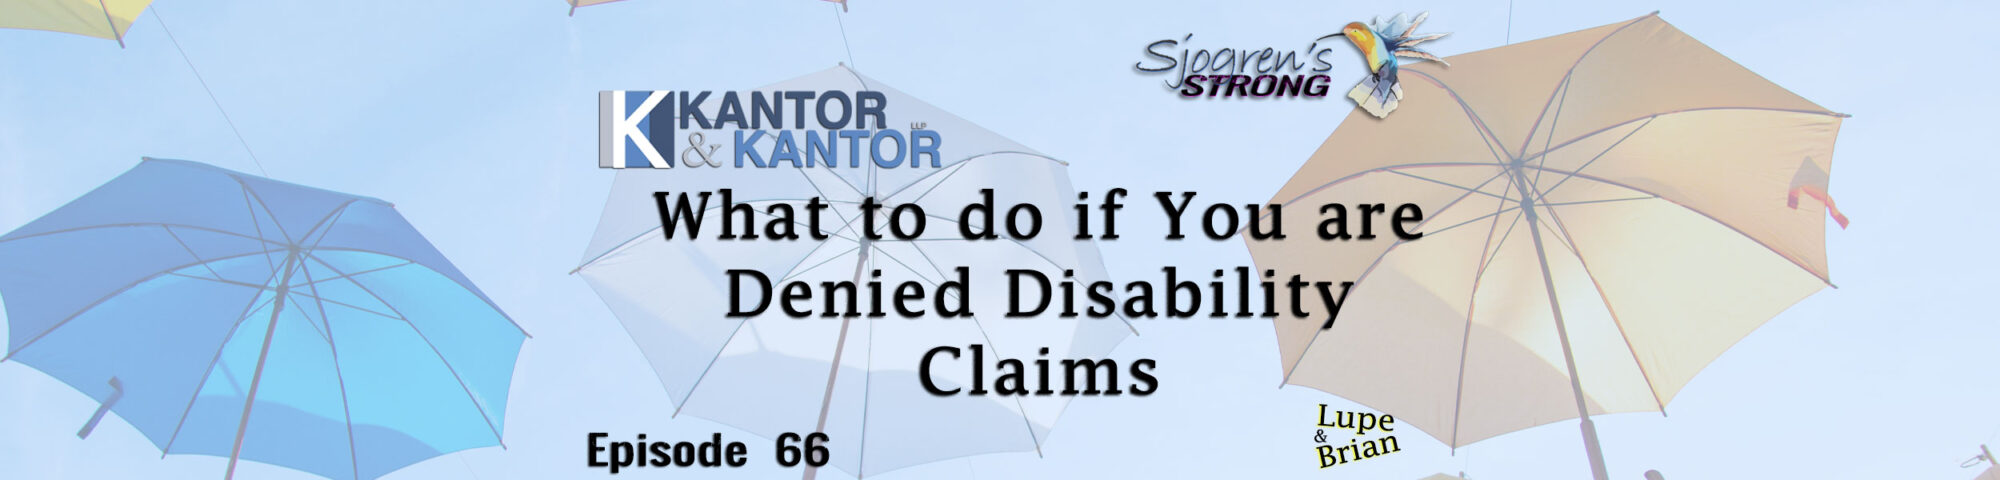 What to do if You are Denied Disability Claims, Episode 66 of Sjogrens Strong